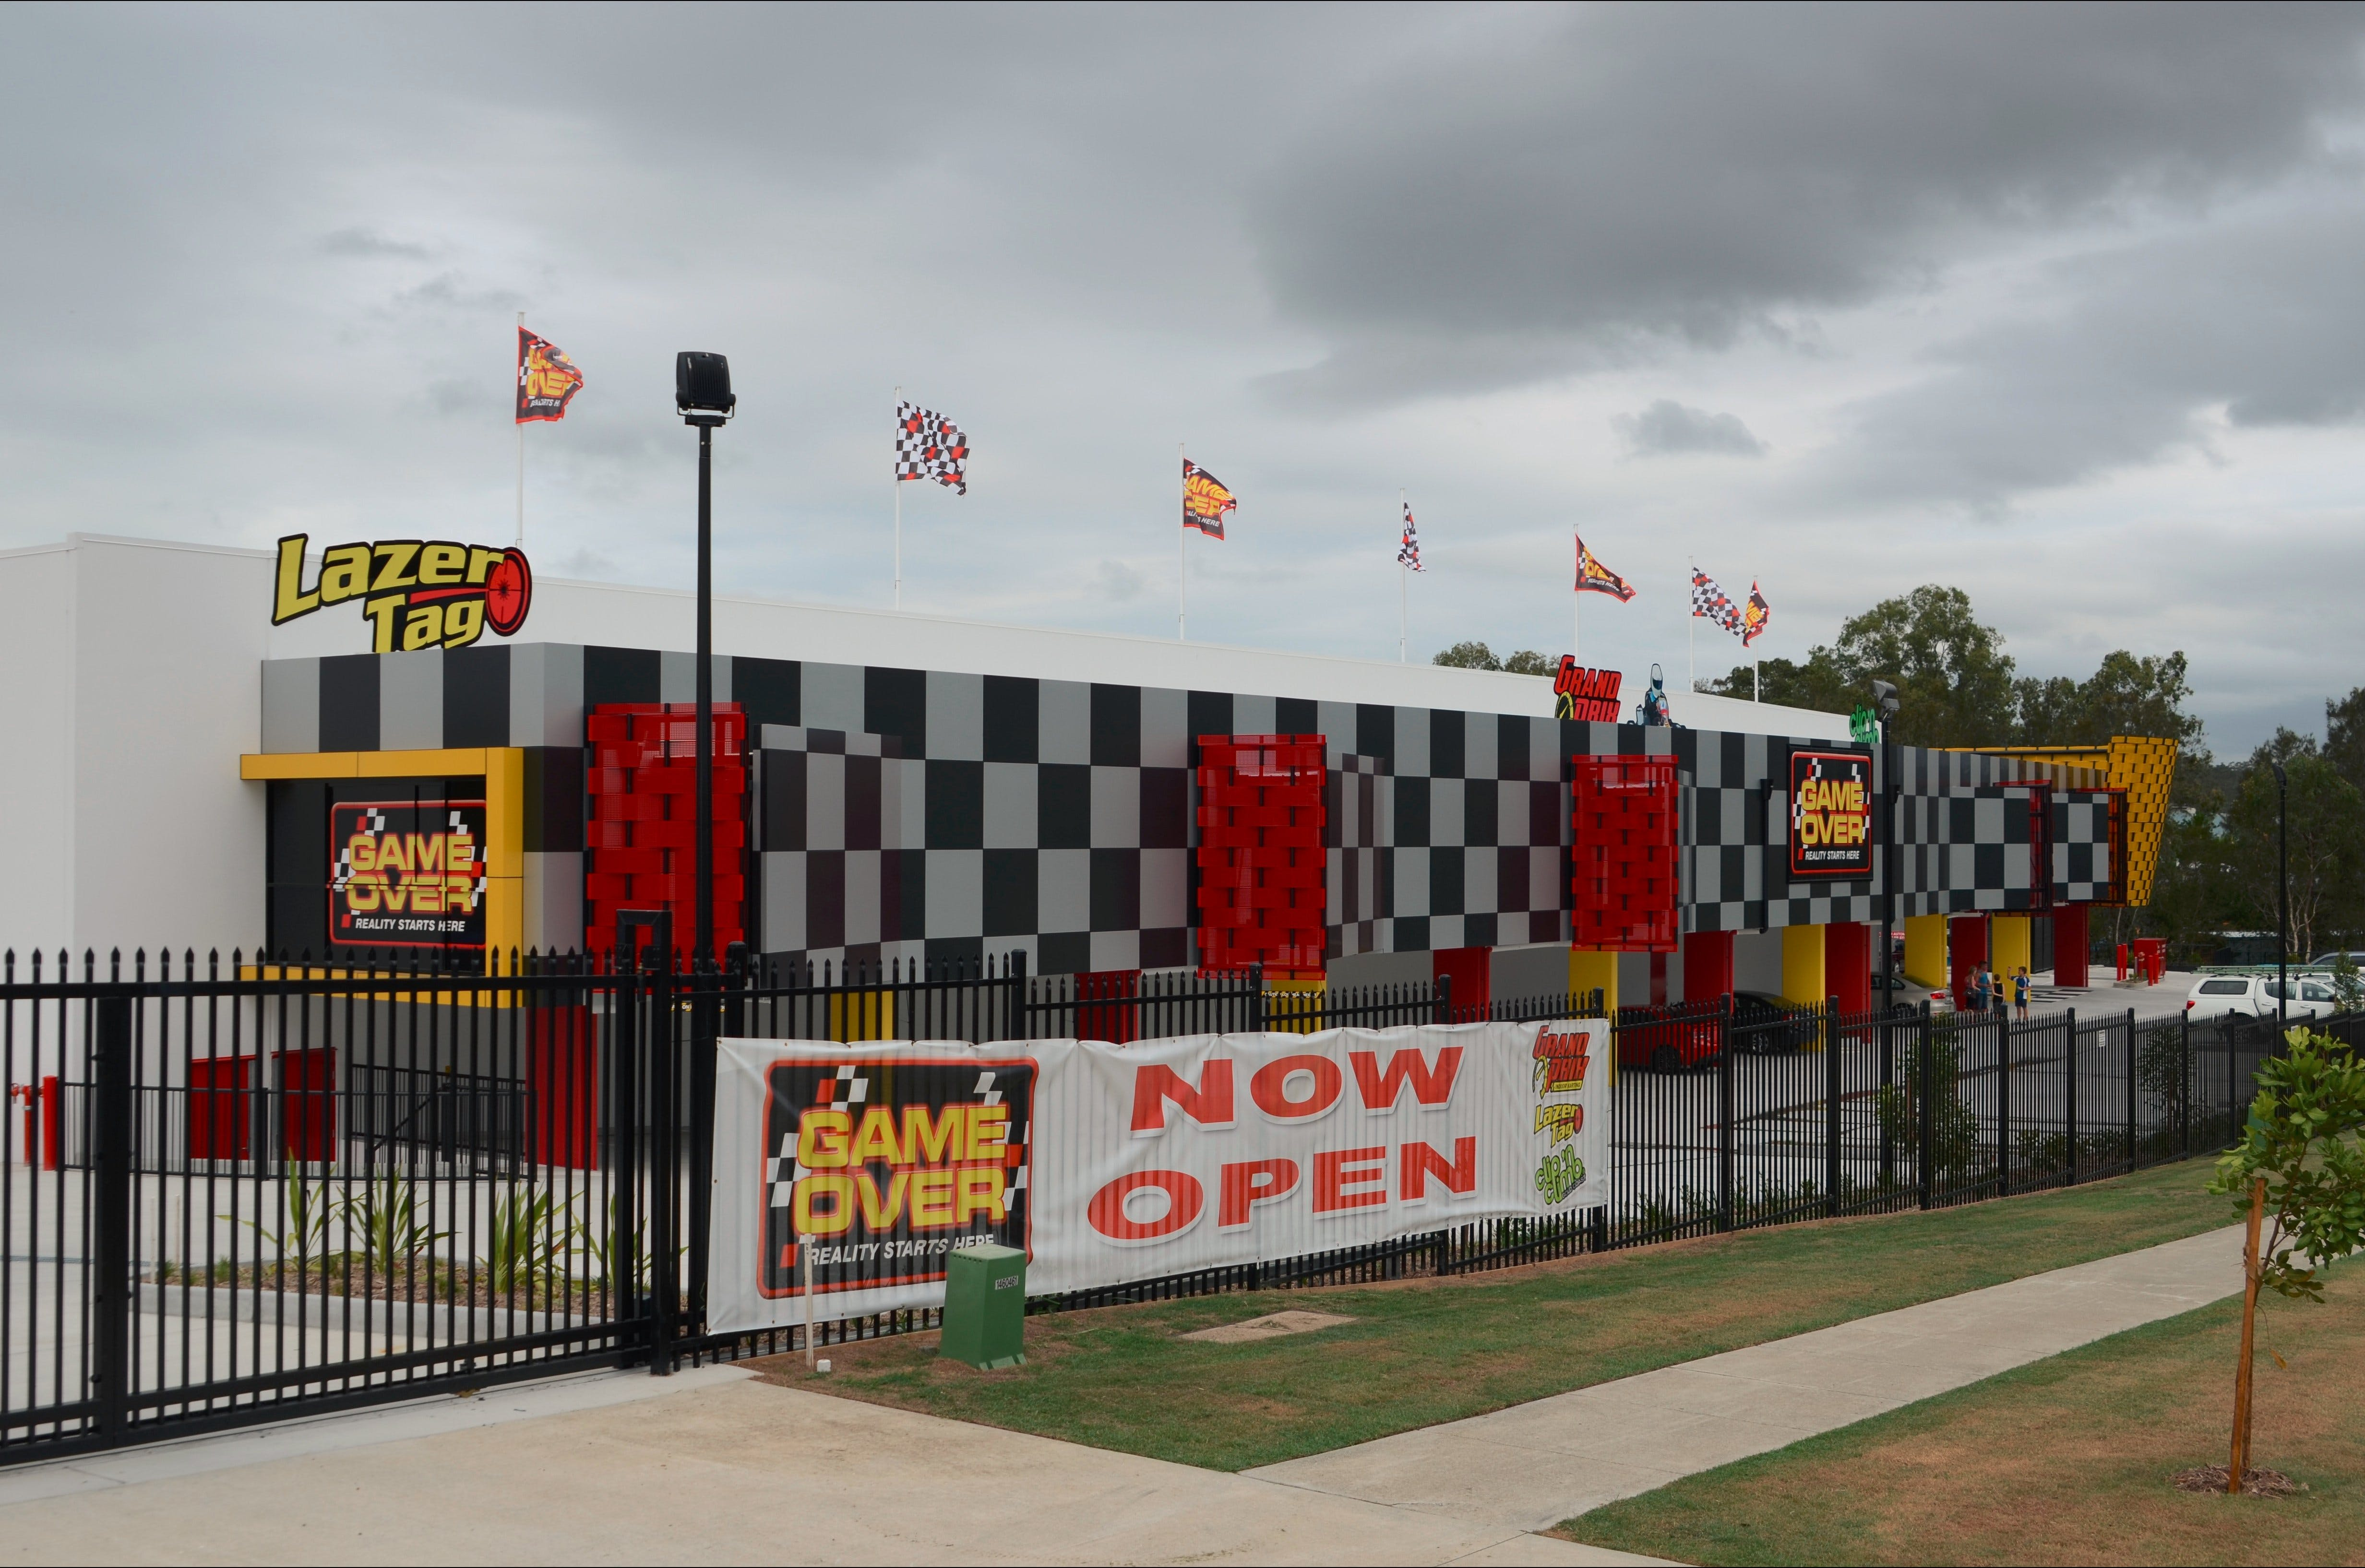 Game Over Indoor Go Karting Adventure Climbing Walls and Lazer Tag Centre - Mackay Tourism